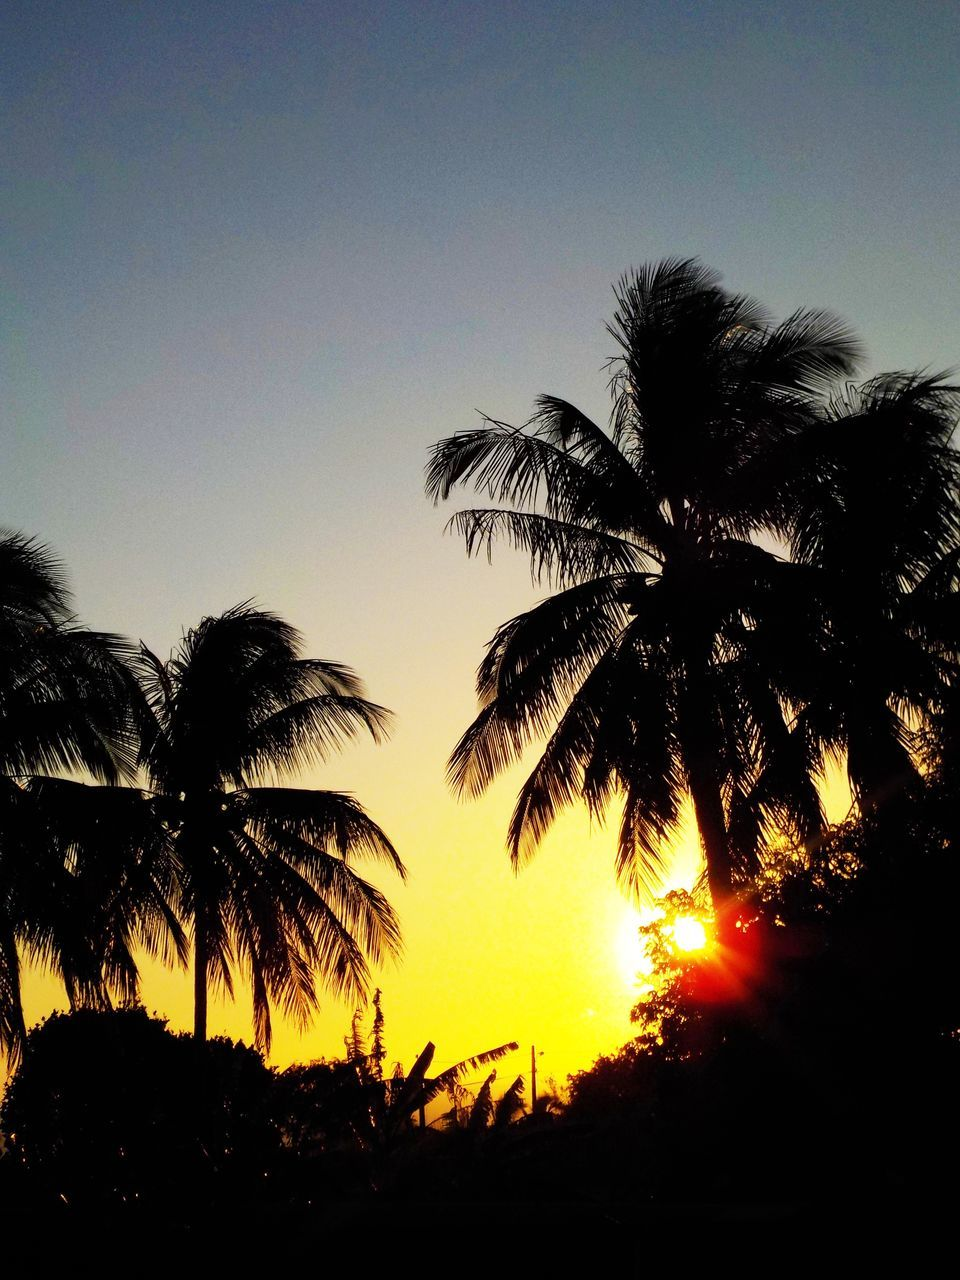 tree, palm tree, silhouette, sunset, nature, beauty in nature, clear sky, scenics, growth, low angle view, sky, tranquility, outdoors, no people, tranquil scene, day